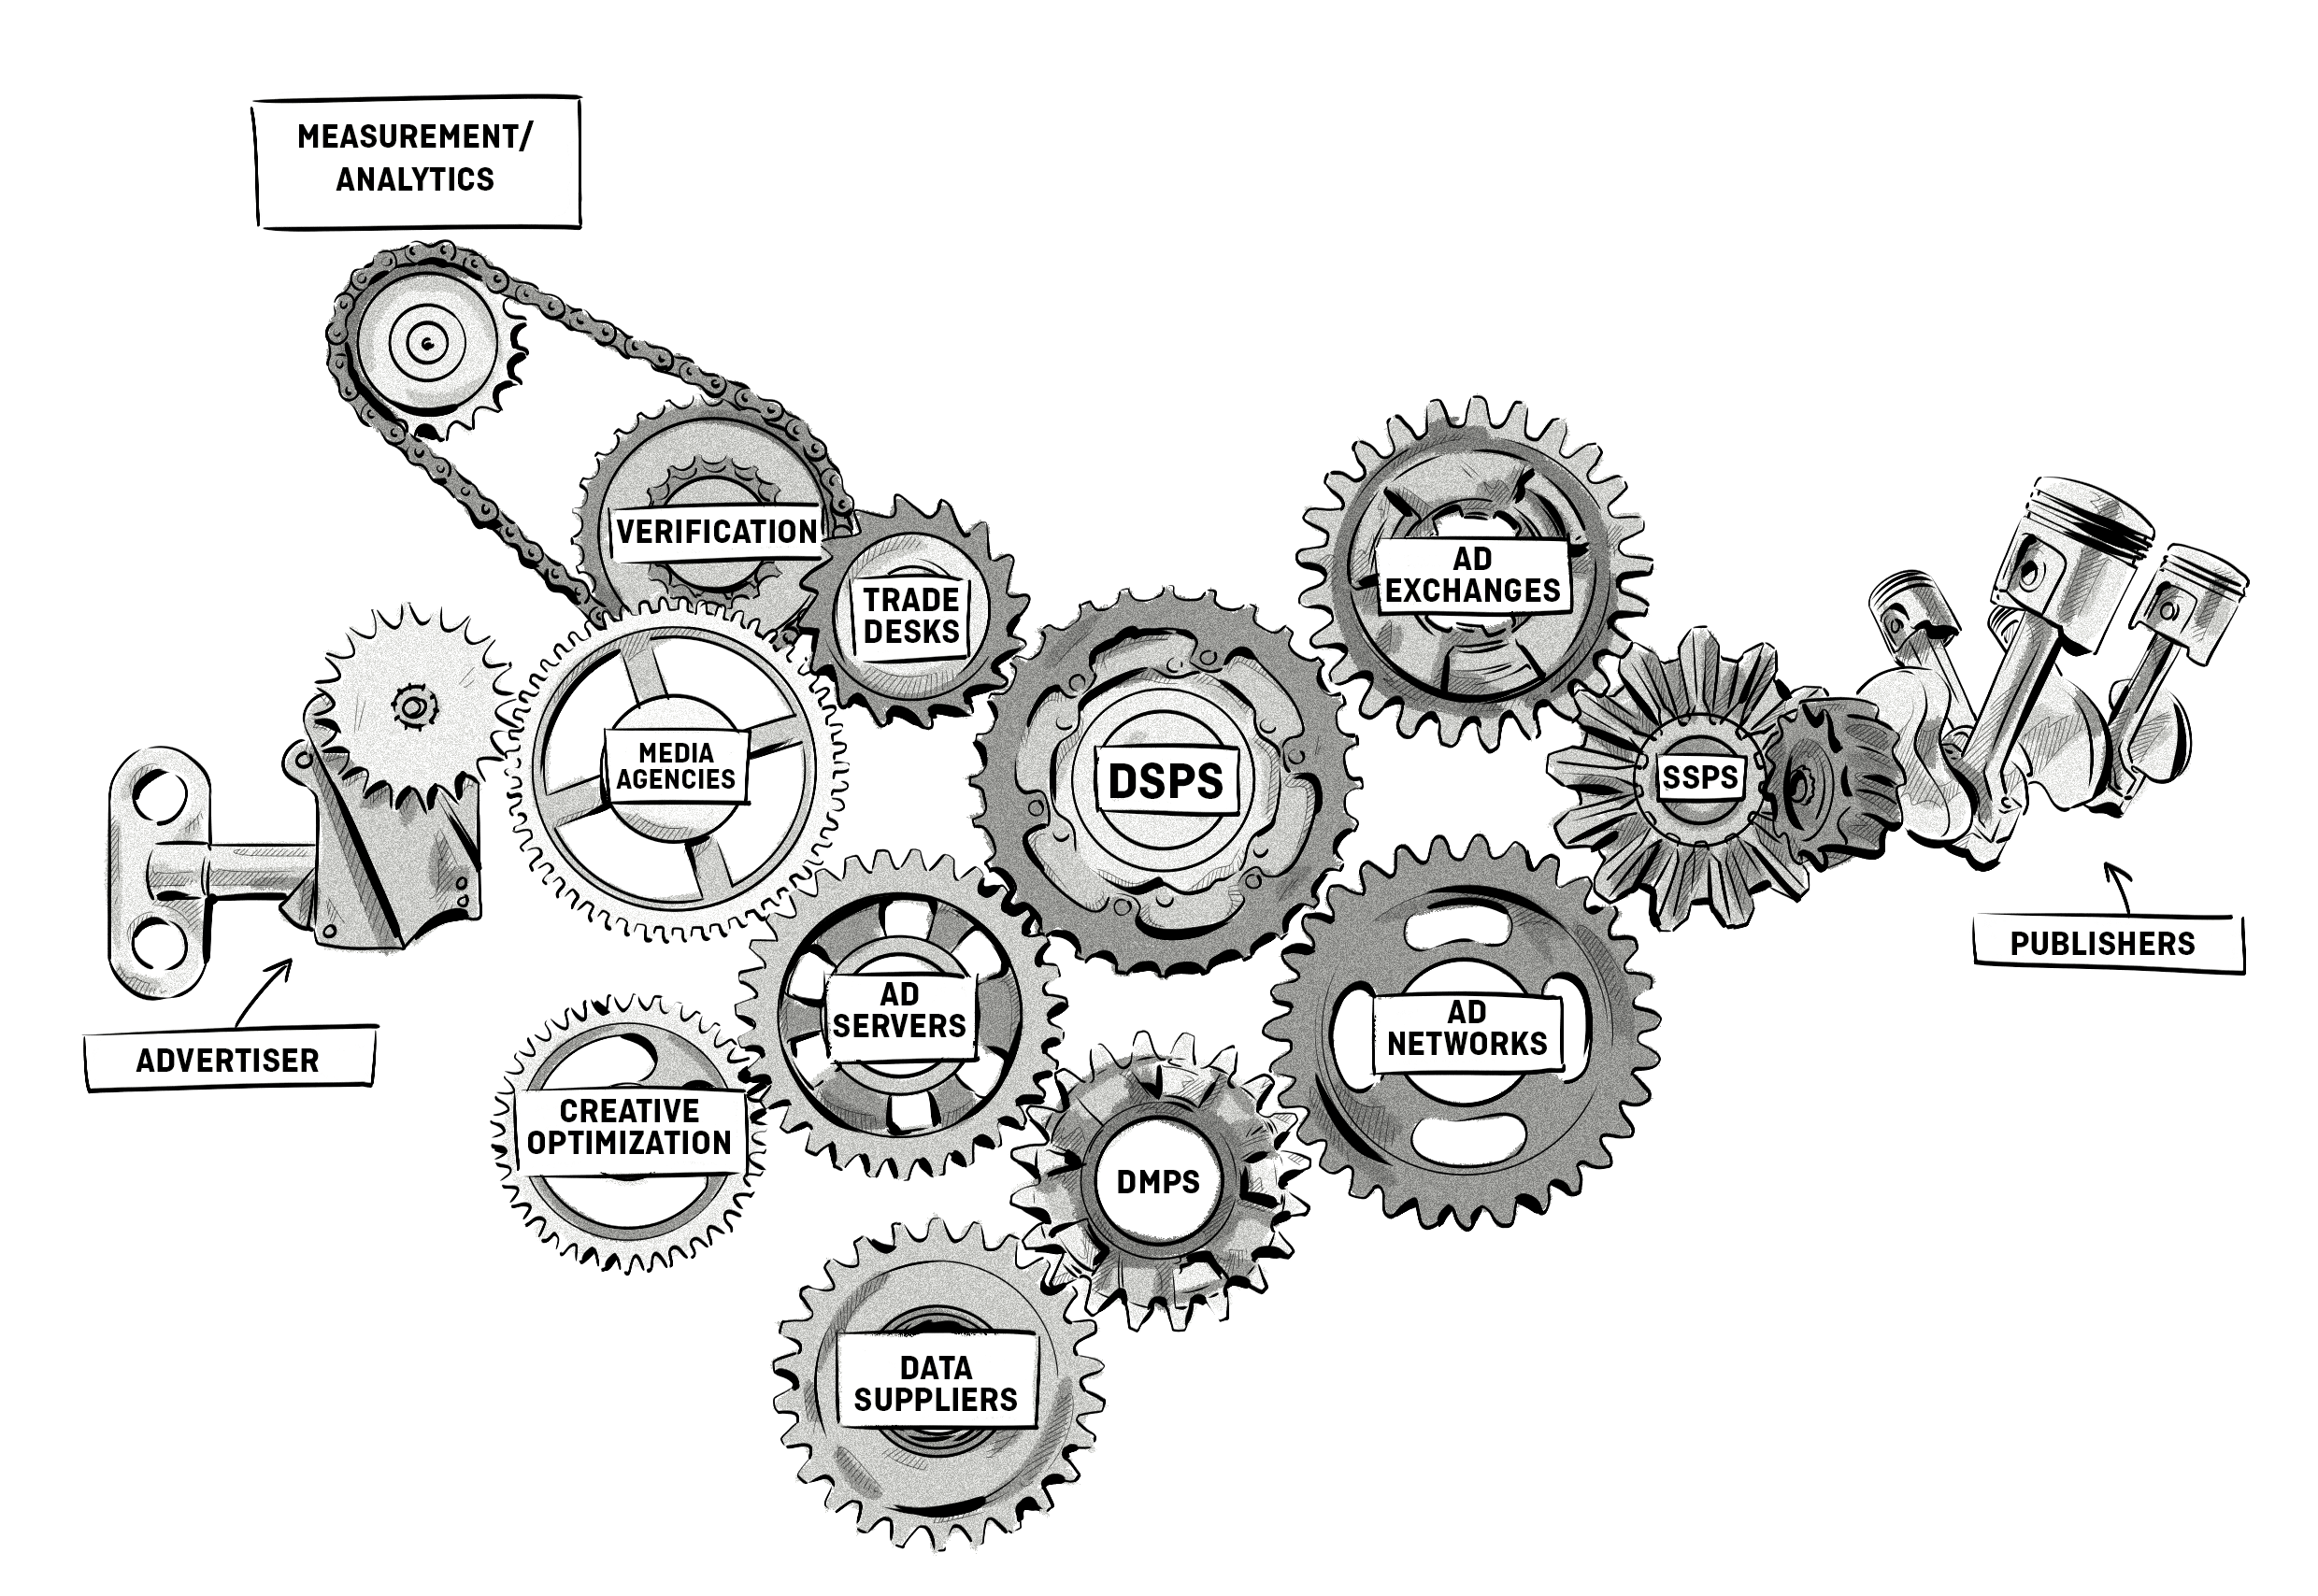 AdTech/MarTech Development and the Vicious Cycle Plaguing Vendors and Agencies